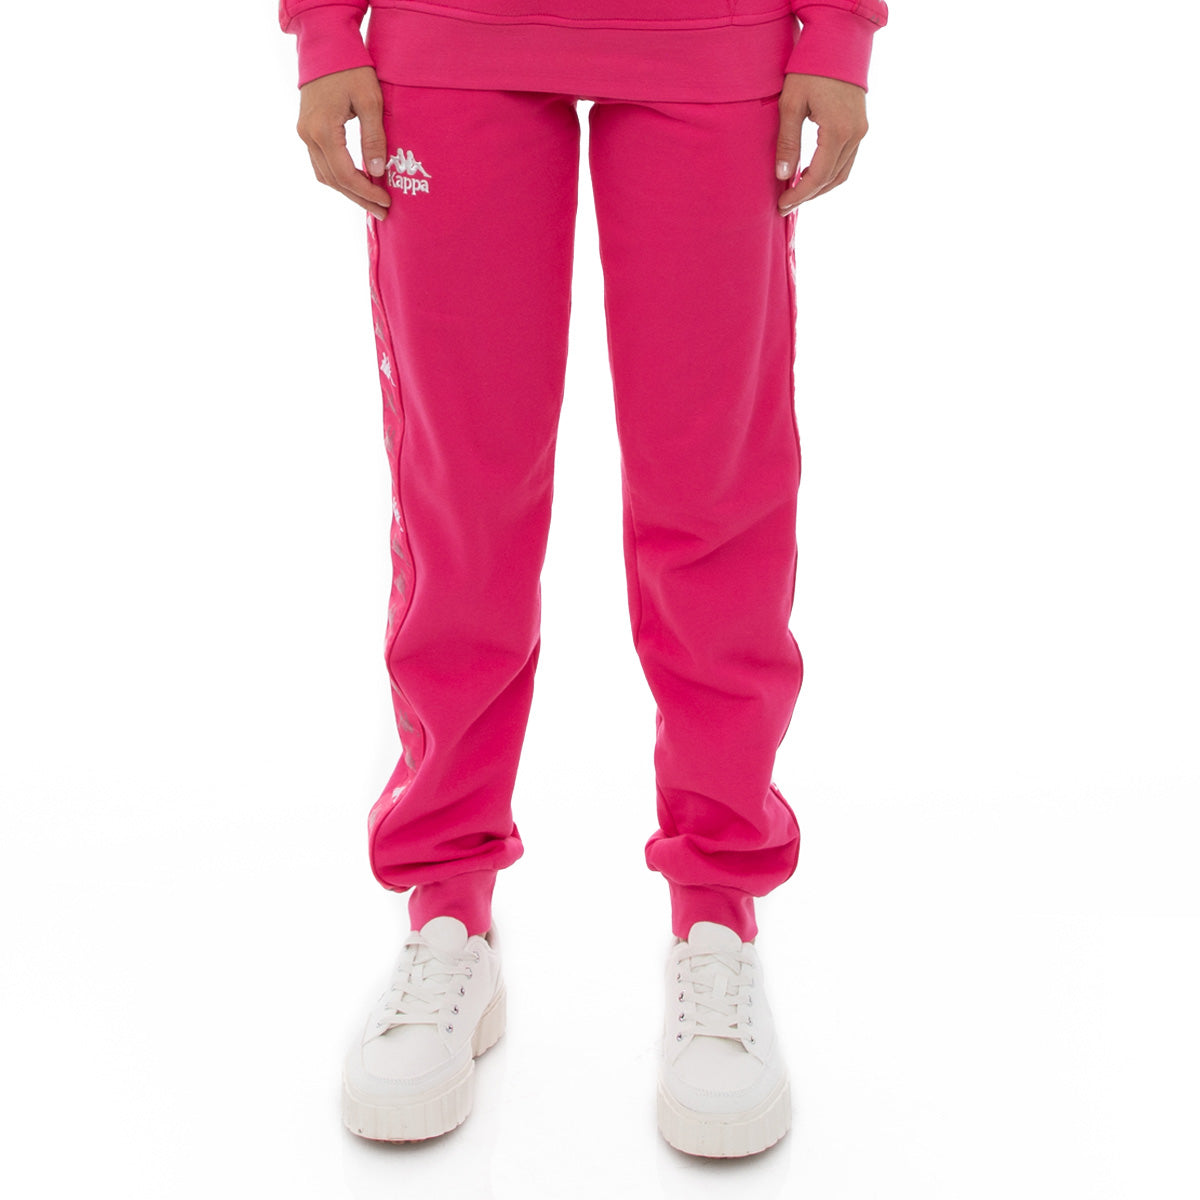 Kappa 222 Banda Brily Sweatpants - Pink Raspberry White